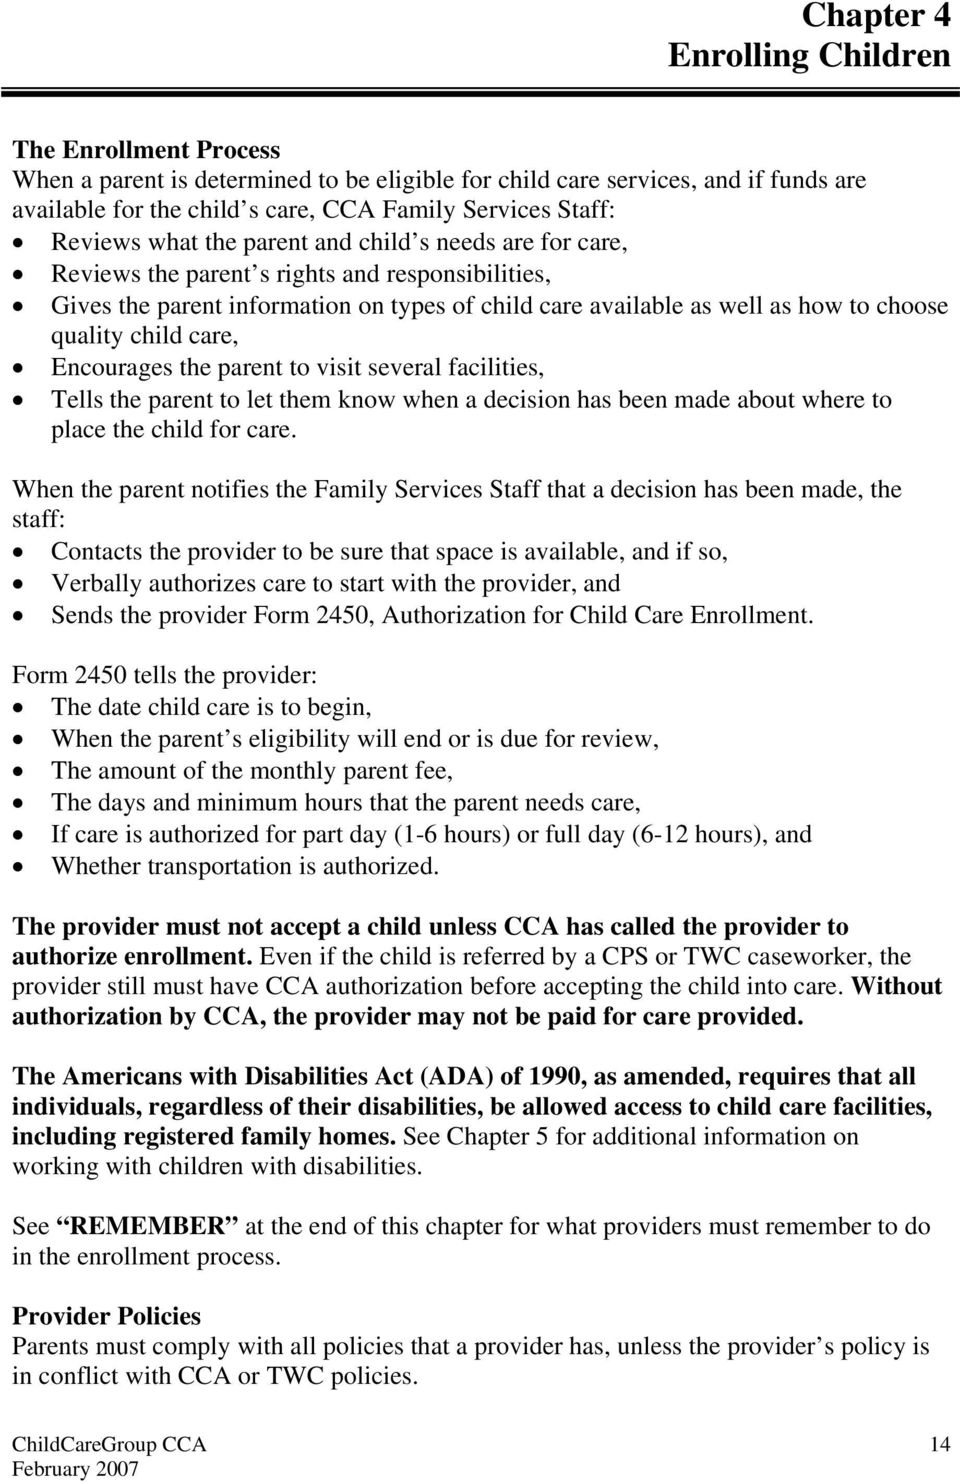 quality child care, Encourages the parent to visit several facilities, Tells the parent to let them know when a decision has been made about where to place the child for care.